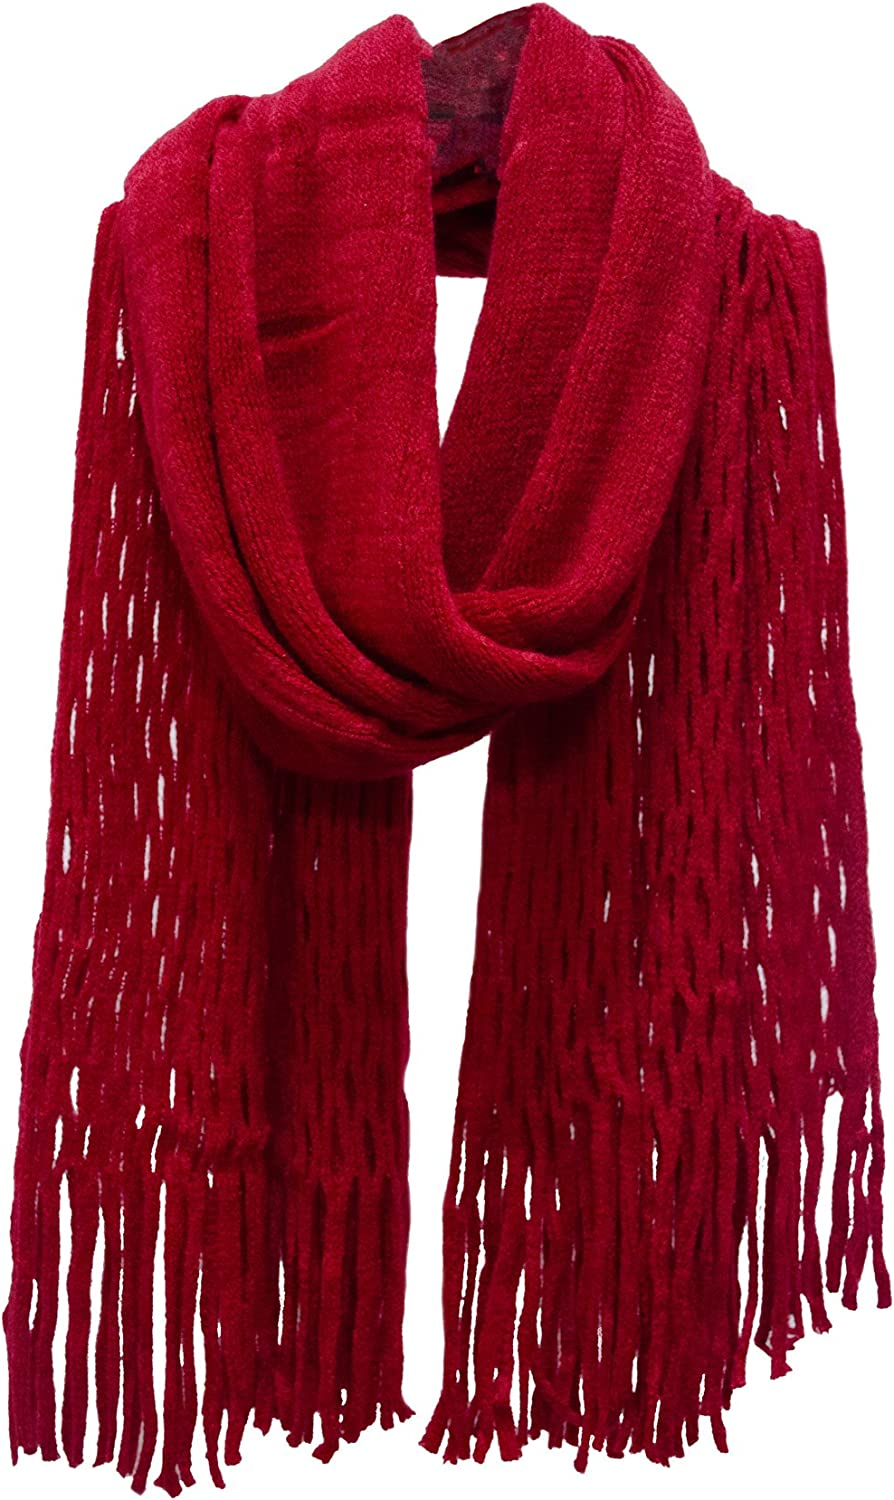 Honeycomb Fringed Knit Scarf Red